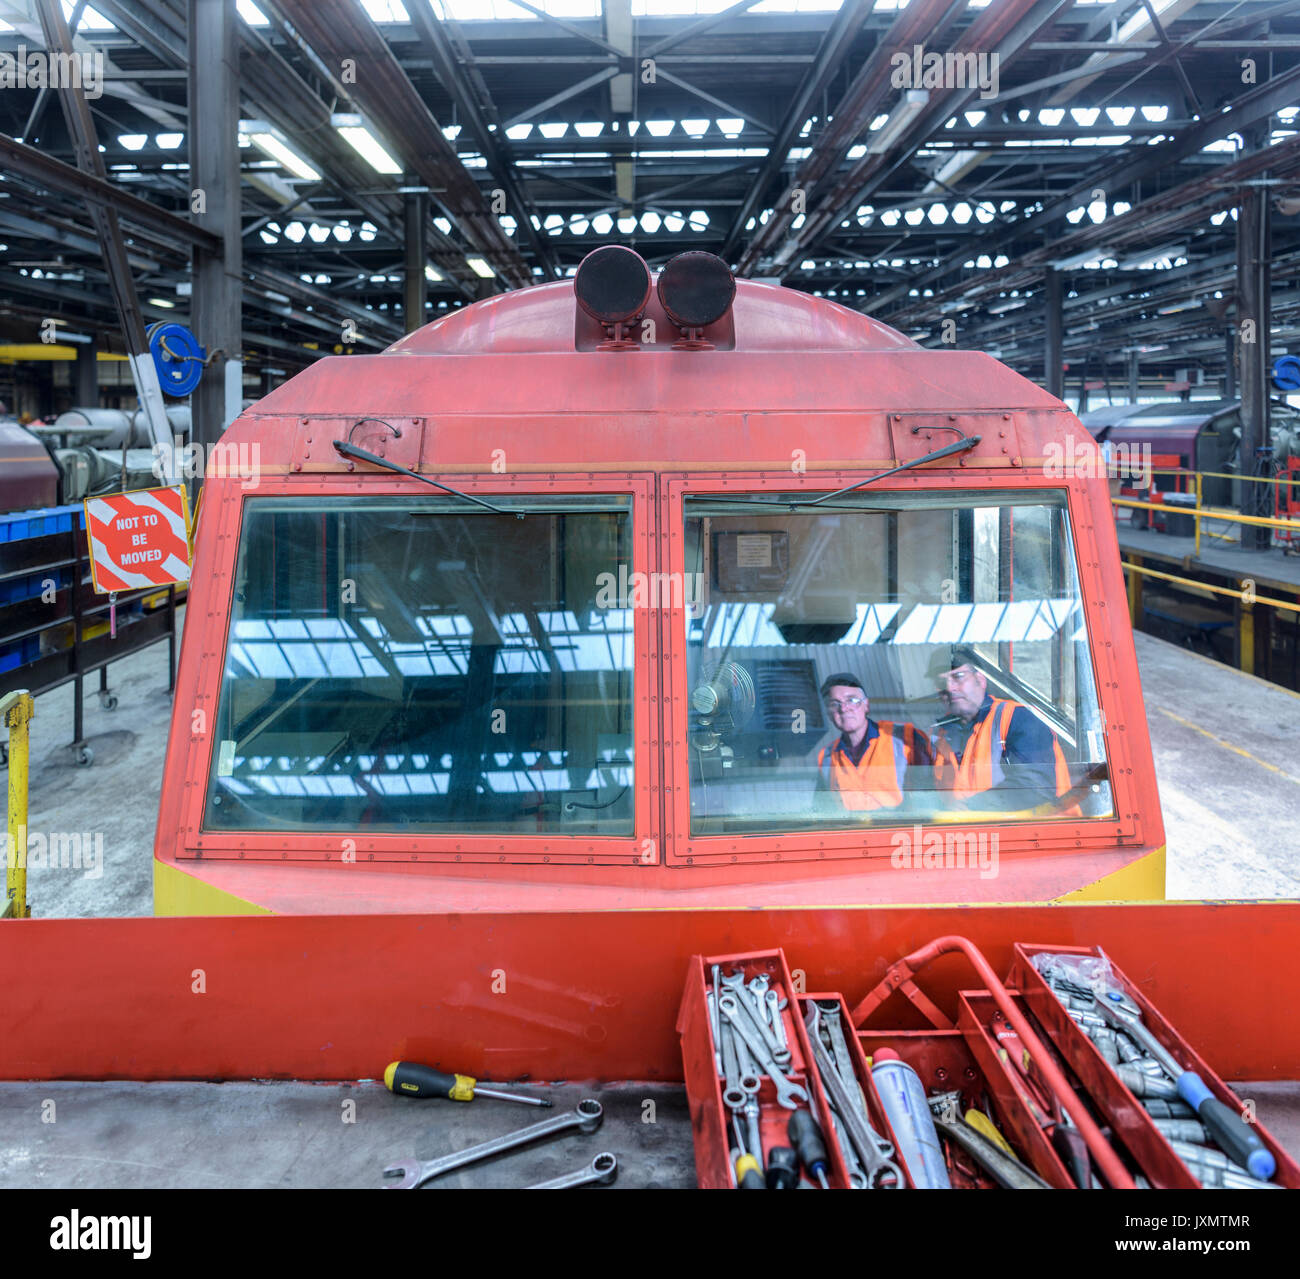 Reflection of locomotive engineers in train works - Stock Image